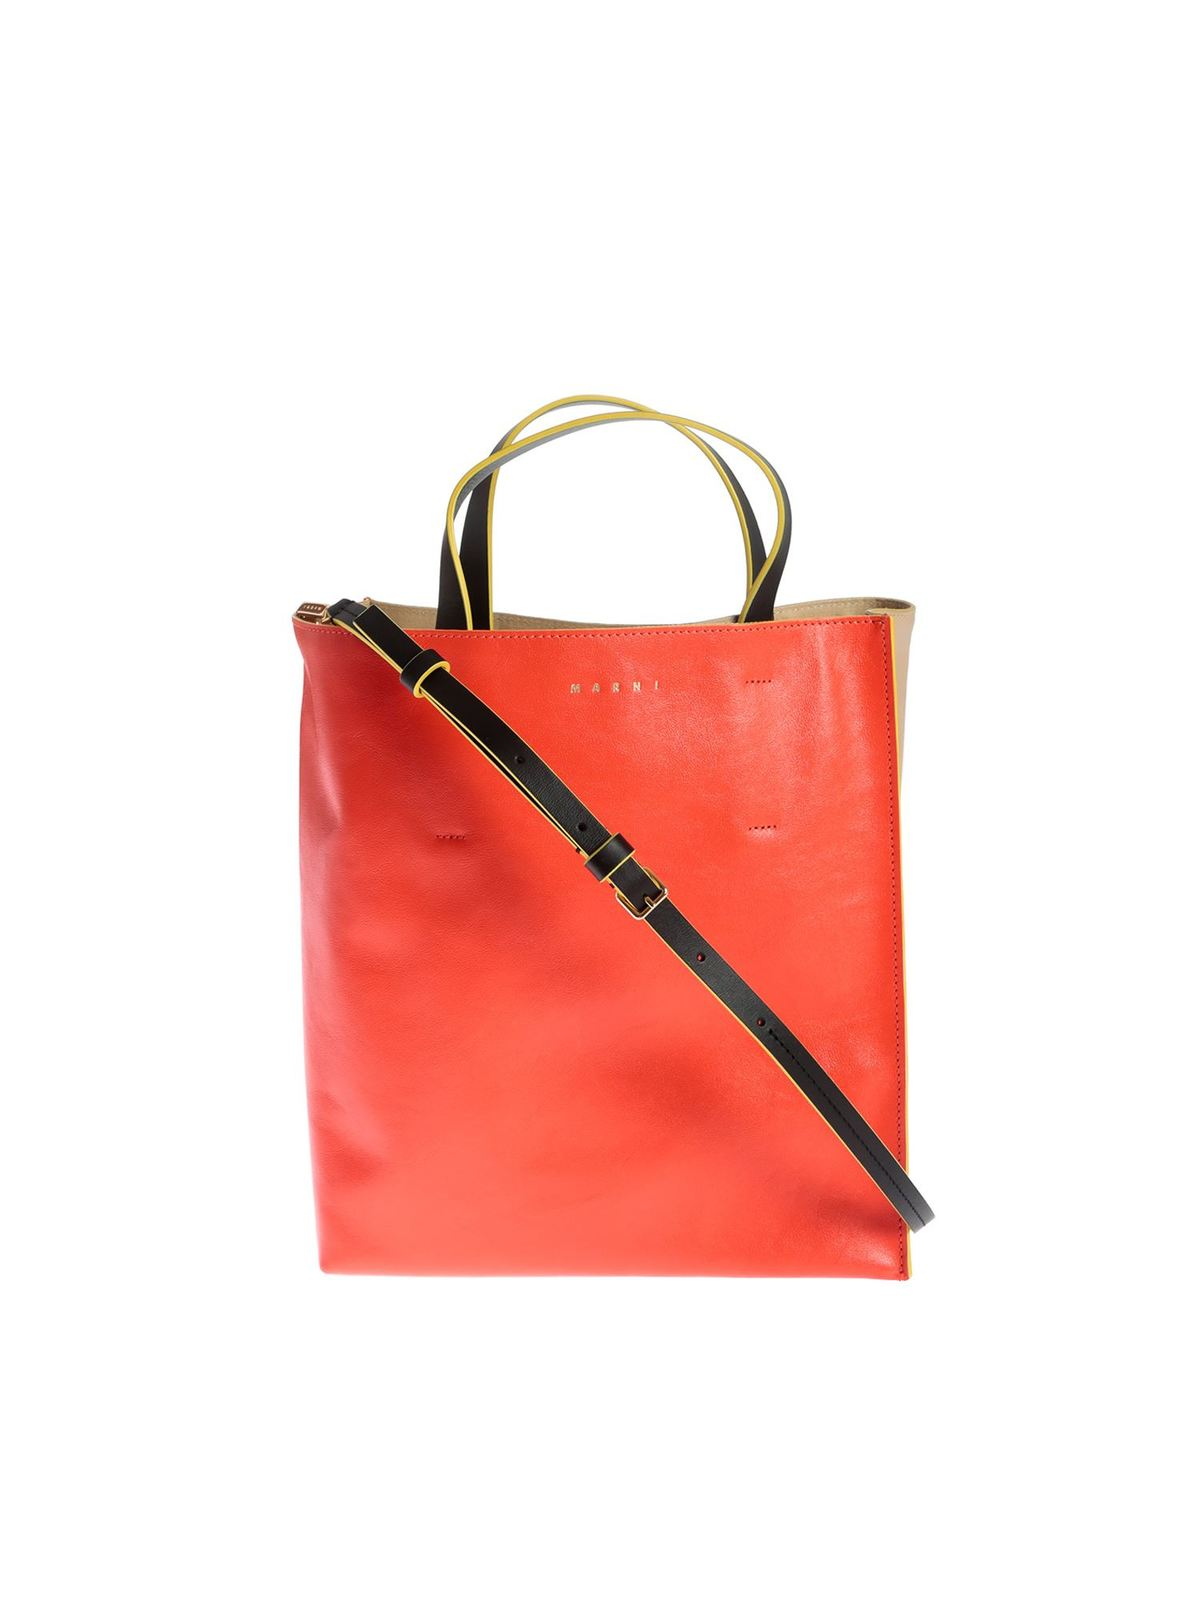 Marni Bags MUSEO SOFT BAG IN RED AND BEIGE